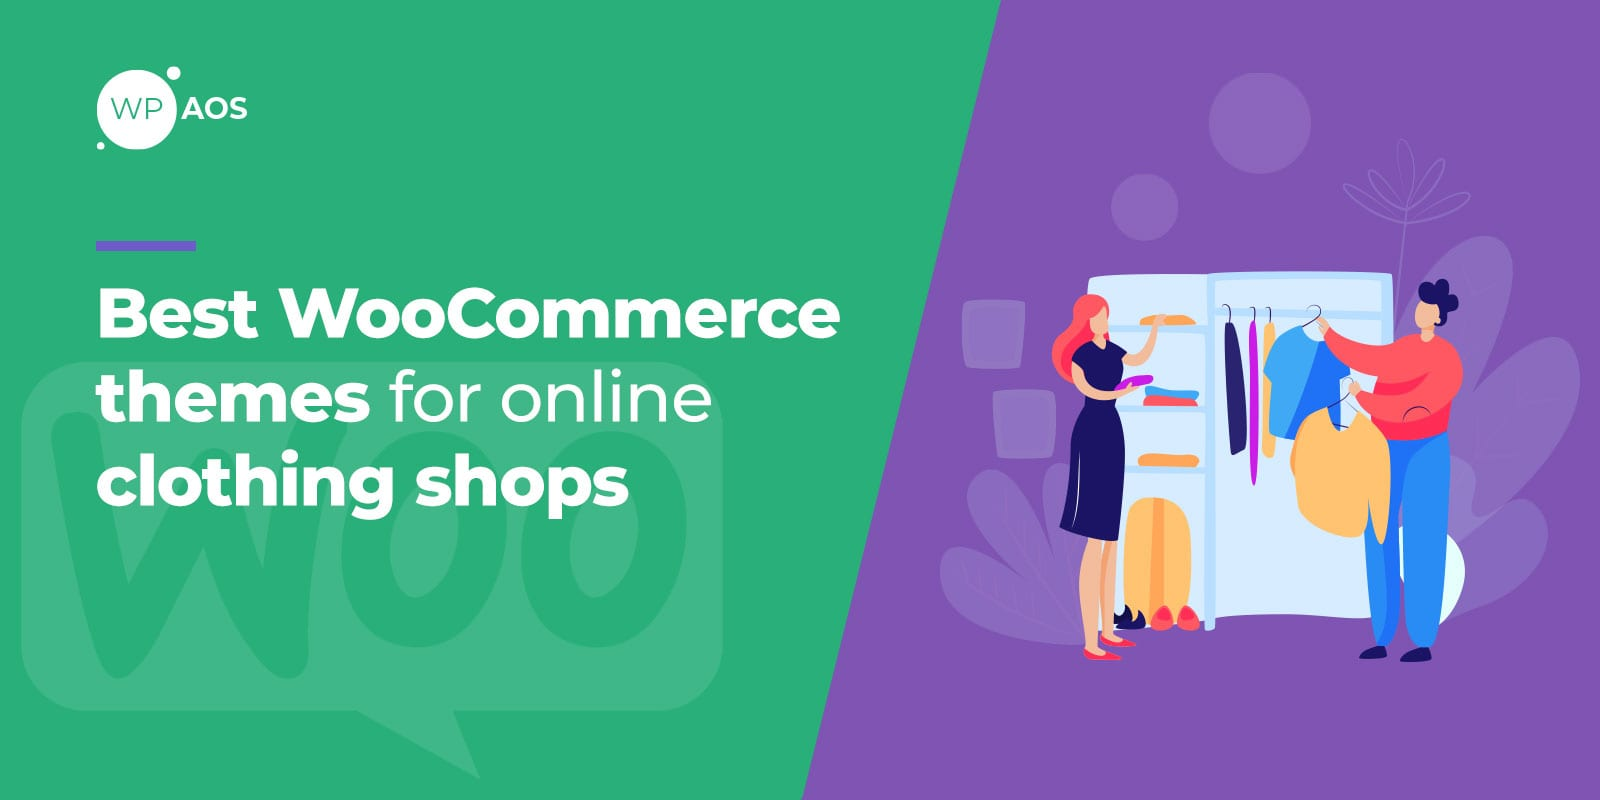 best woocommerce themes, online clothing shops, wordpress ecommerce themes, wpaos